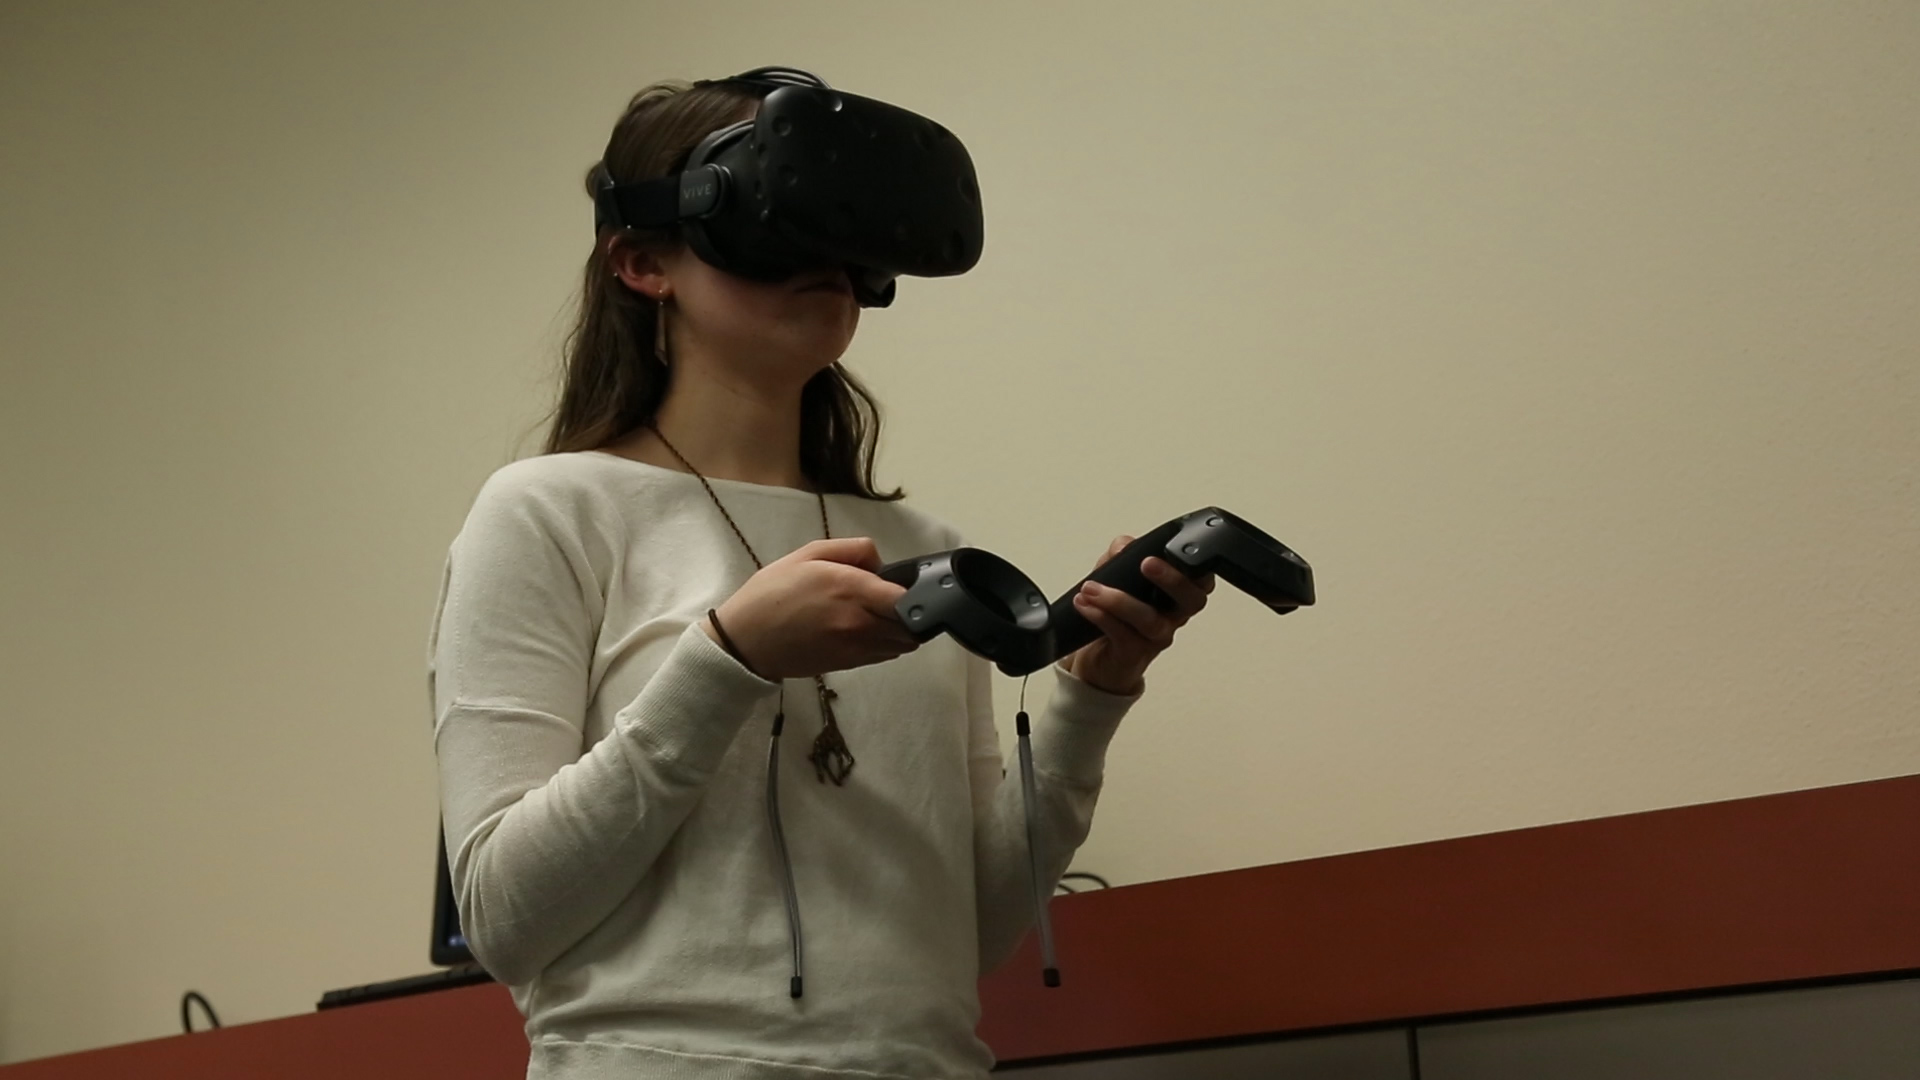 students try vr equipment